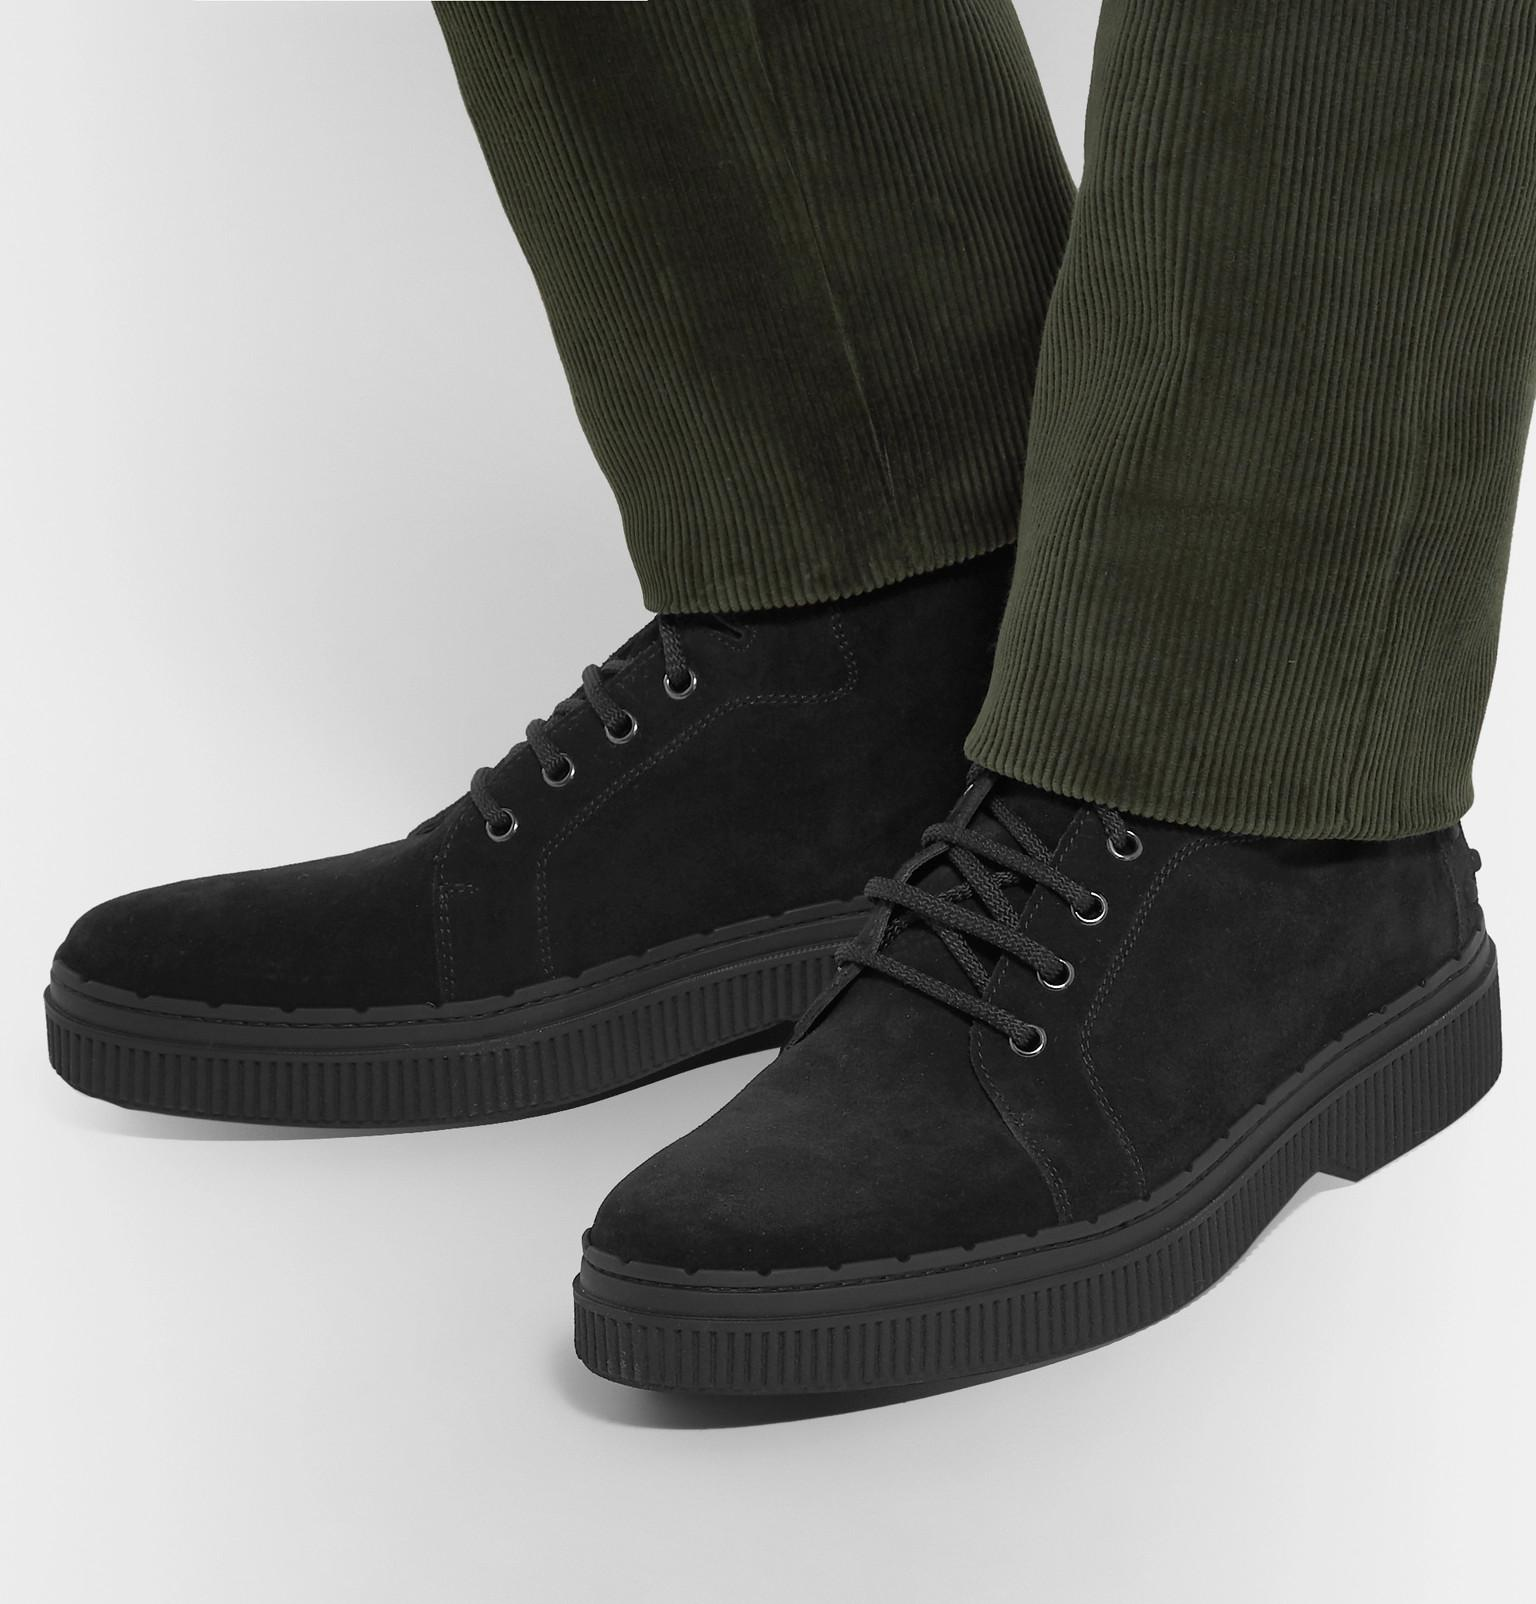 the best attitude f855d 07ff3 tods-black-Nubuck-Boots.jpeg